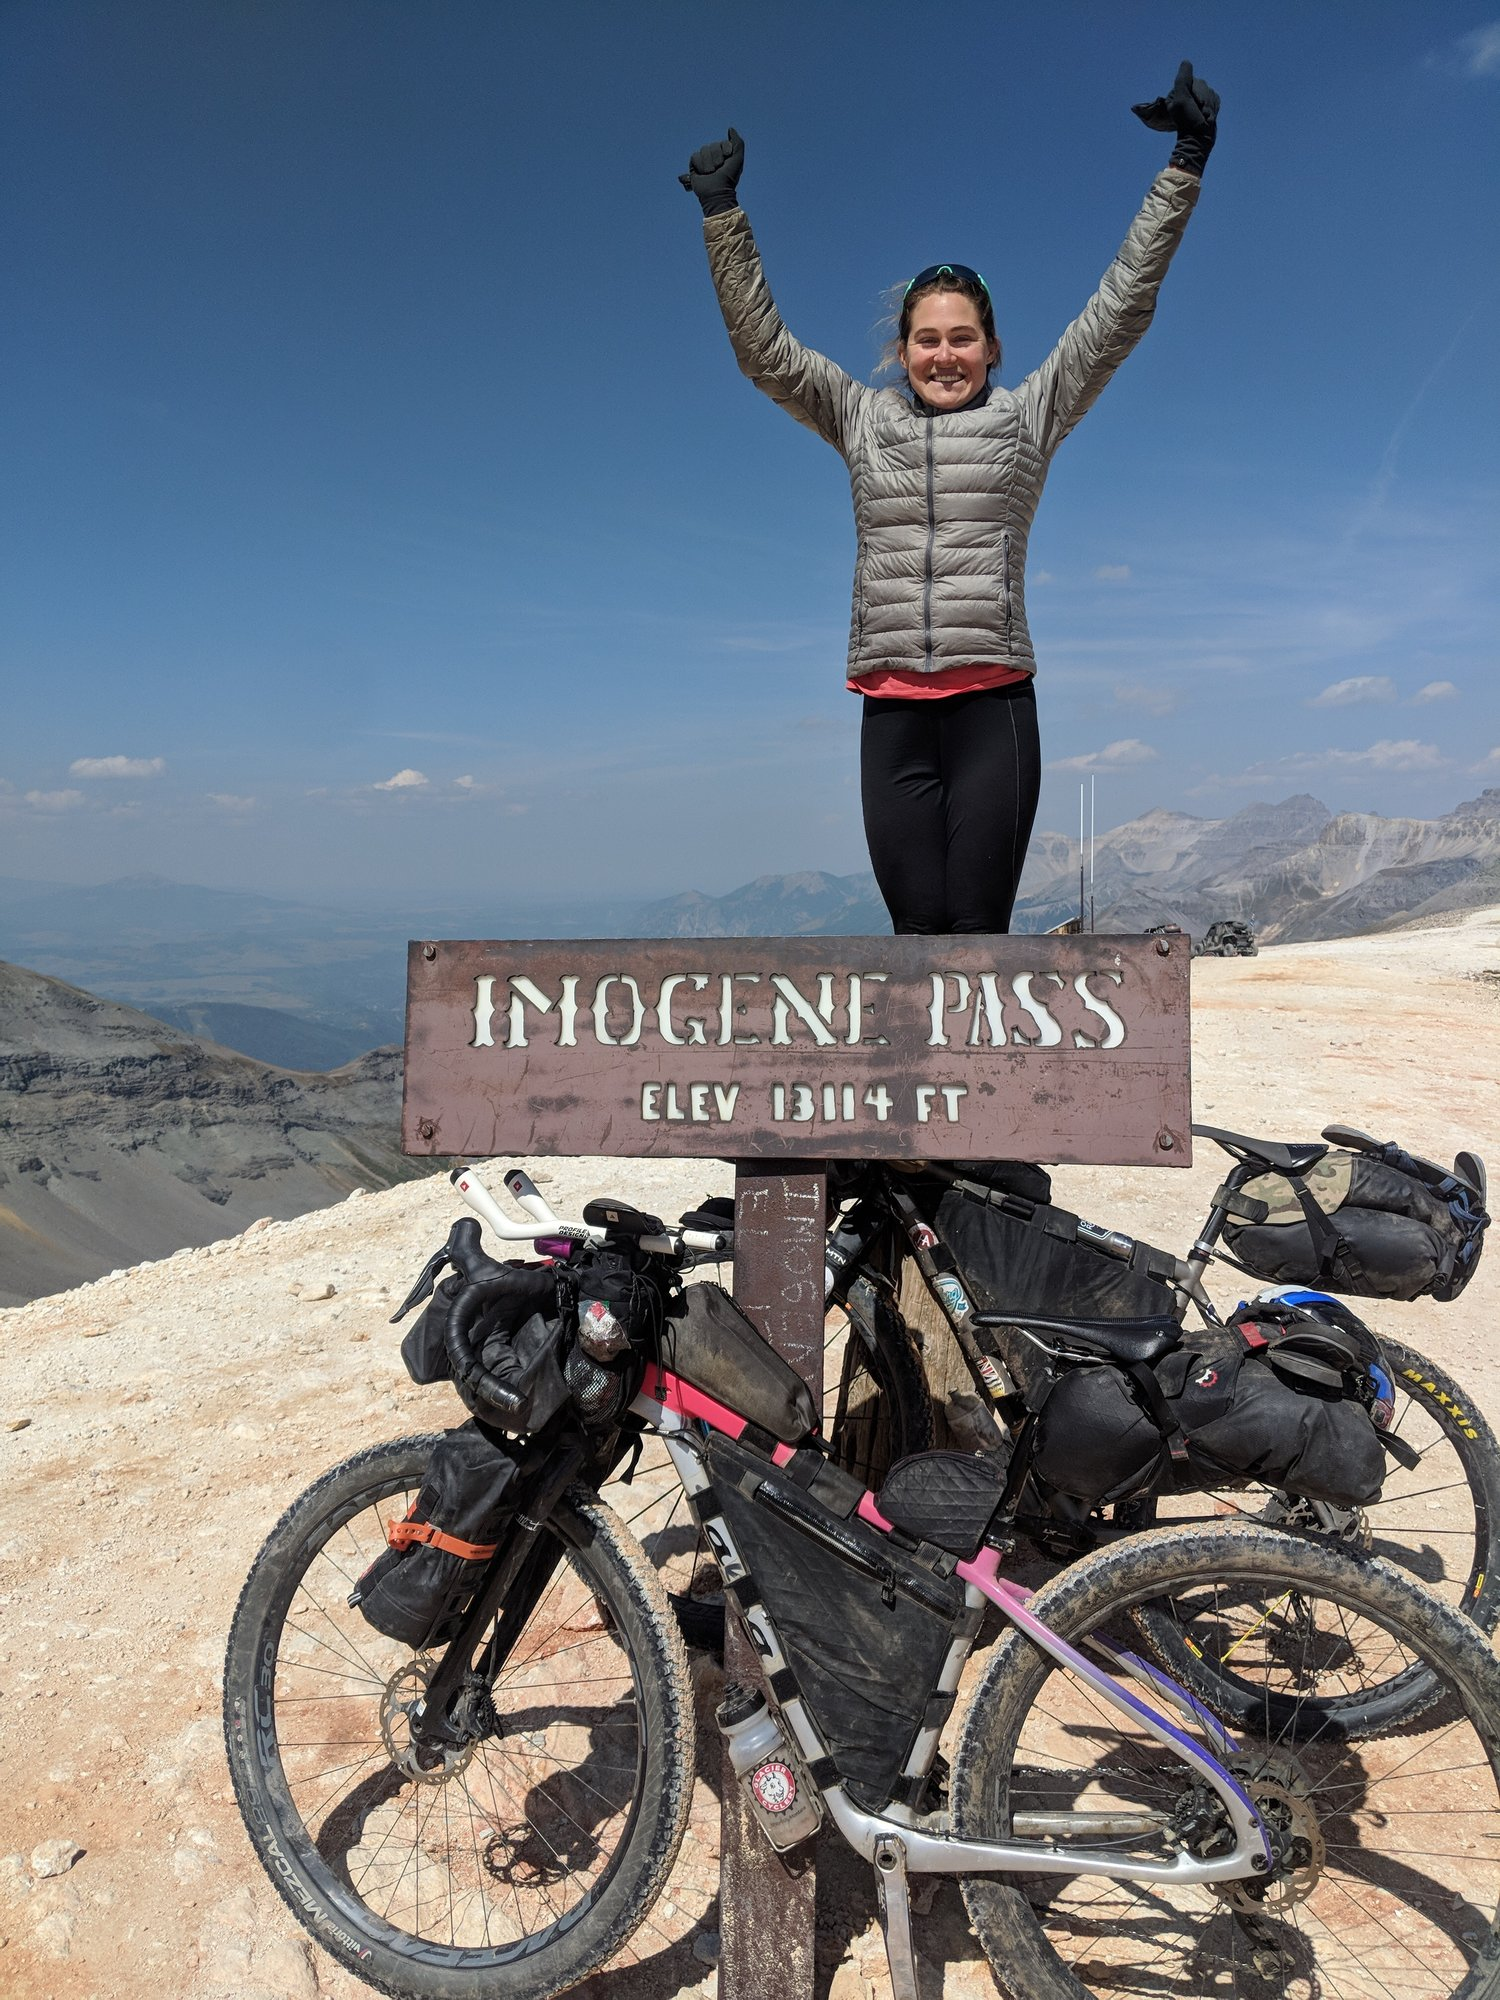 Caitlin in her victory pose on Imogene Pass